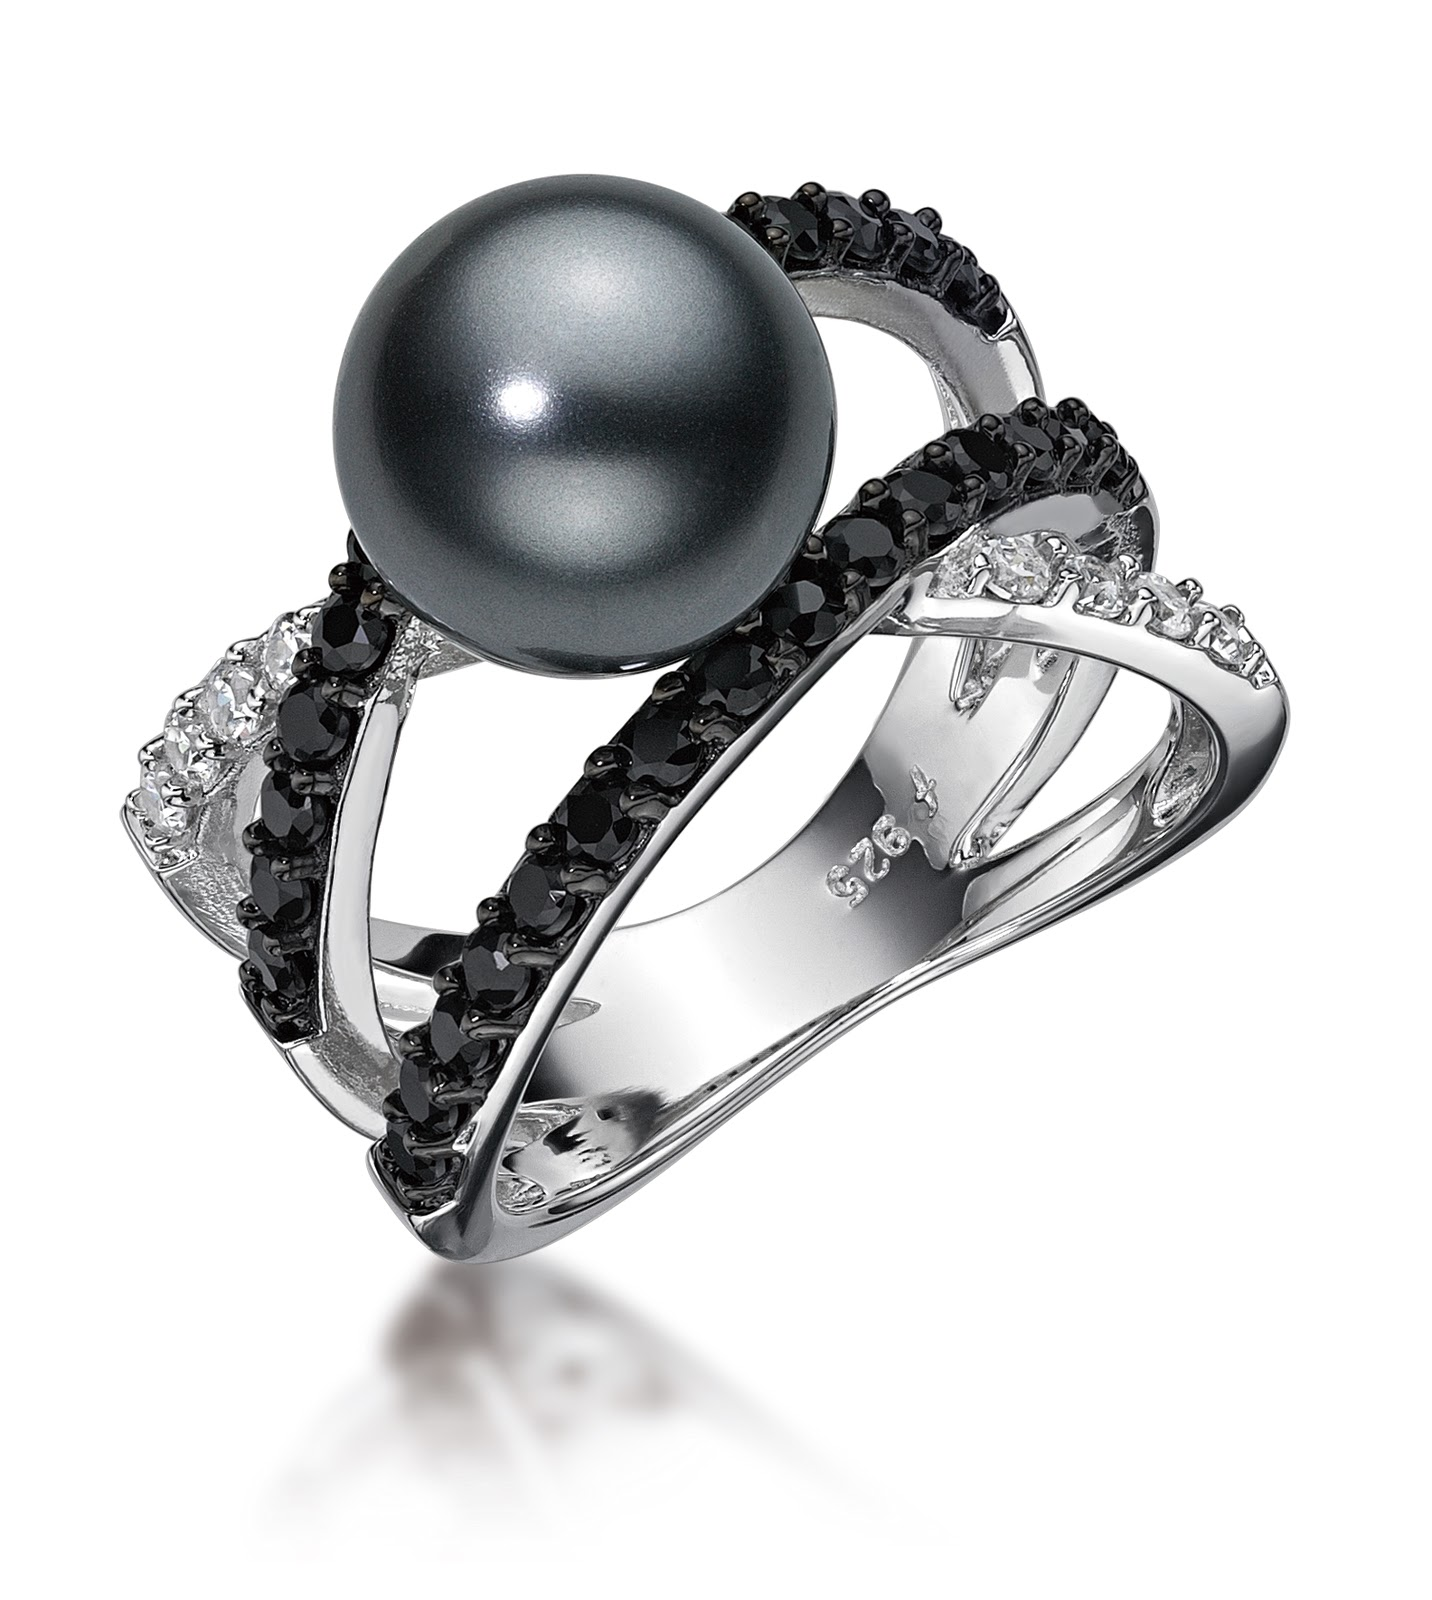 Pearl Rings White Gold Is And Yellow Purity Measured In Carats